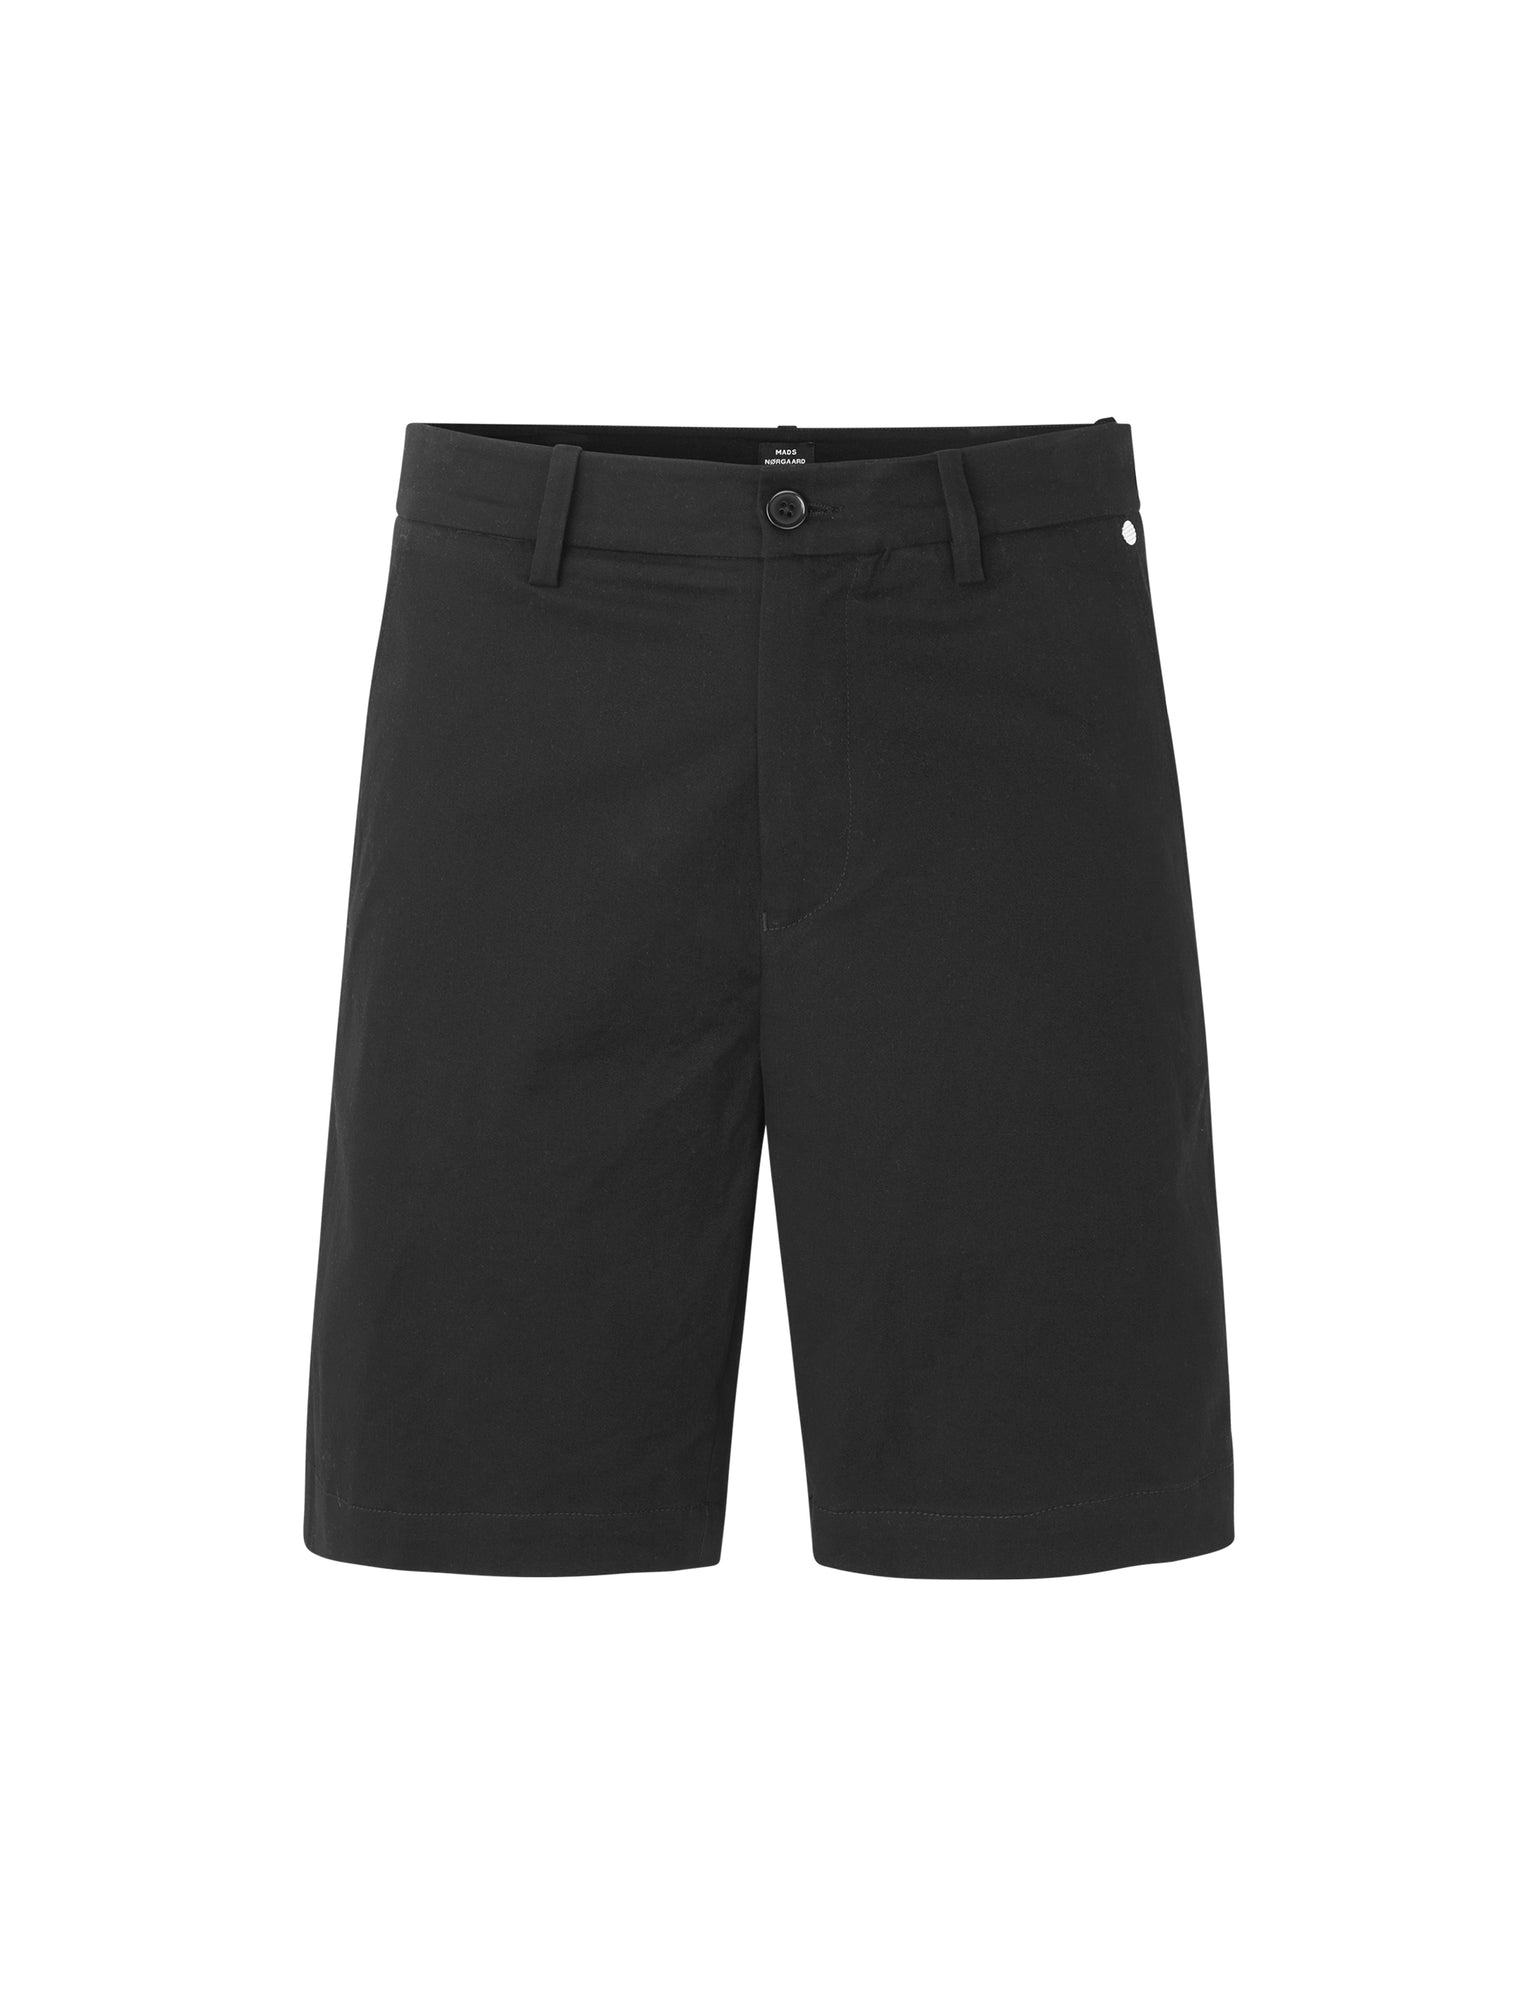 Comfort Pavel Shorts, Black